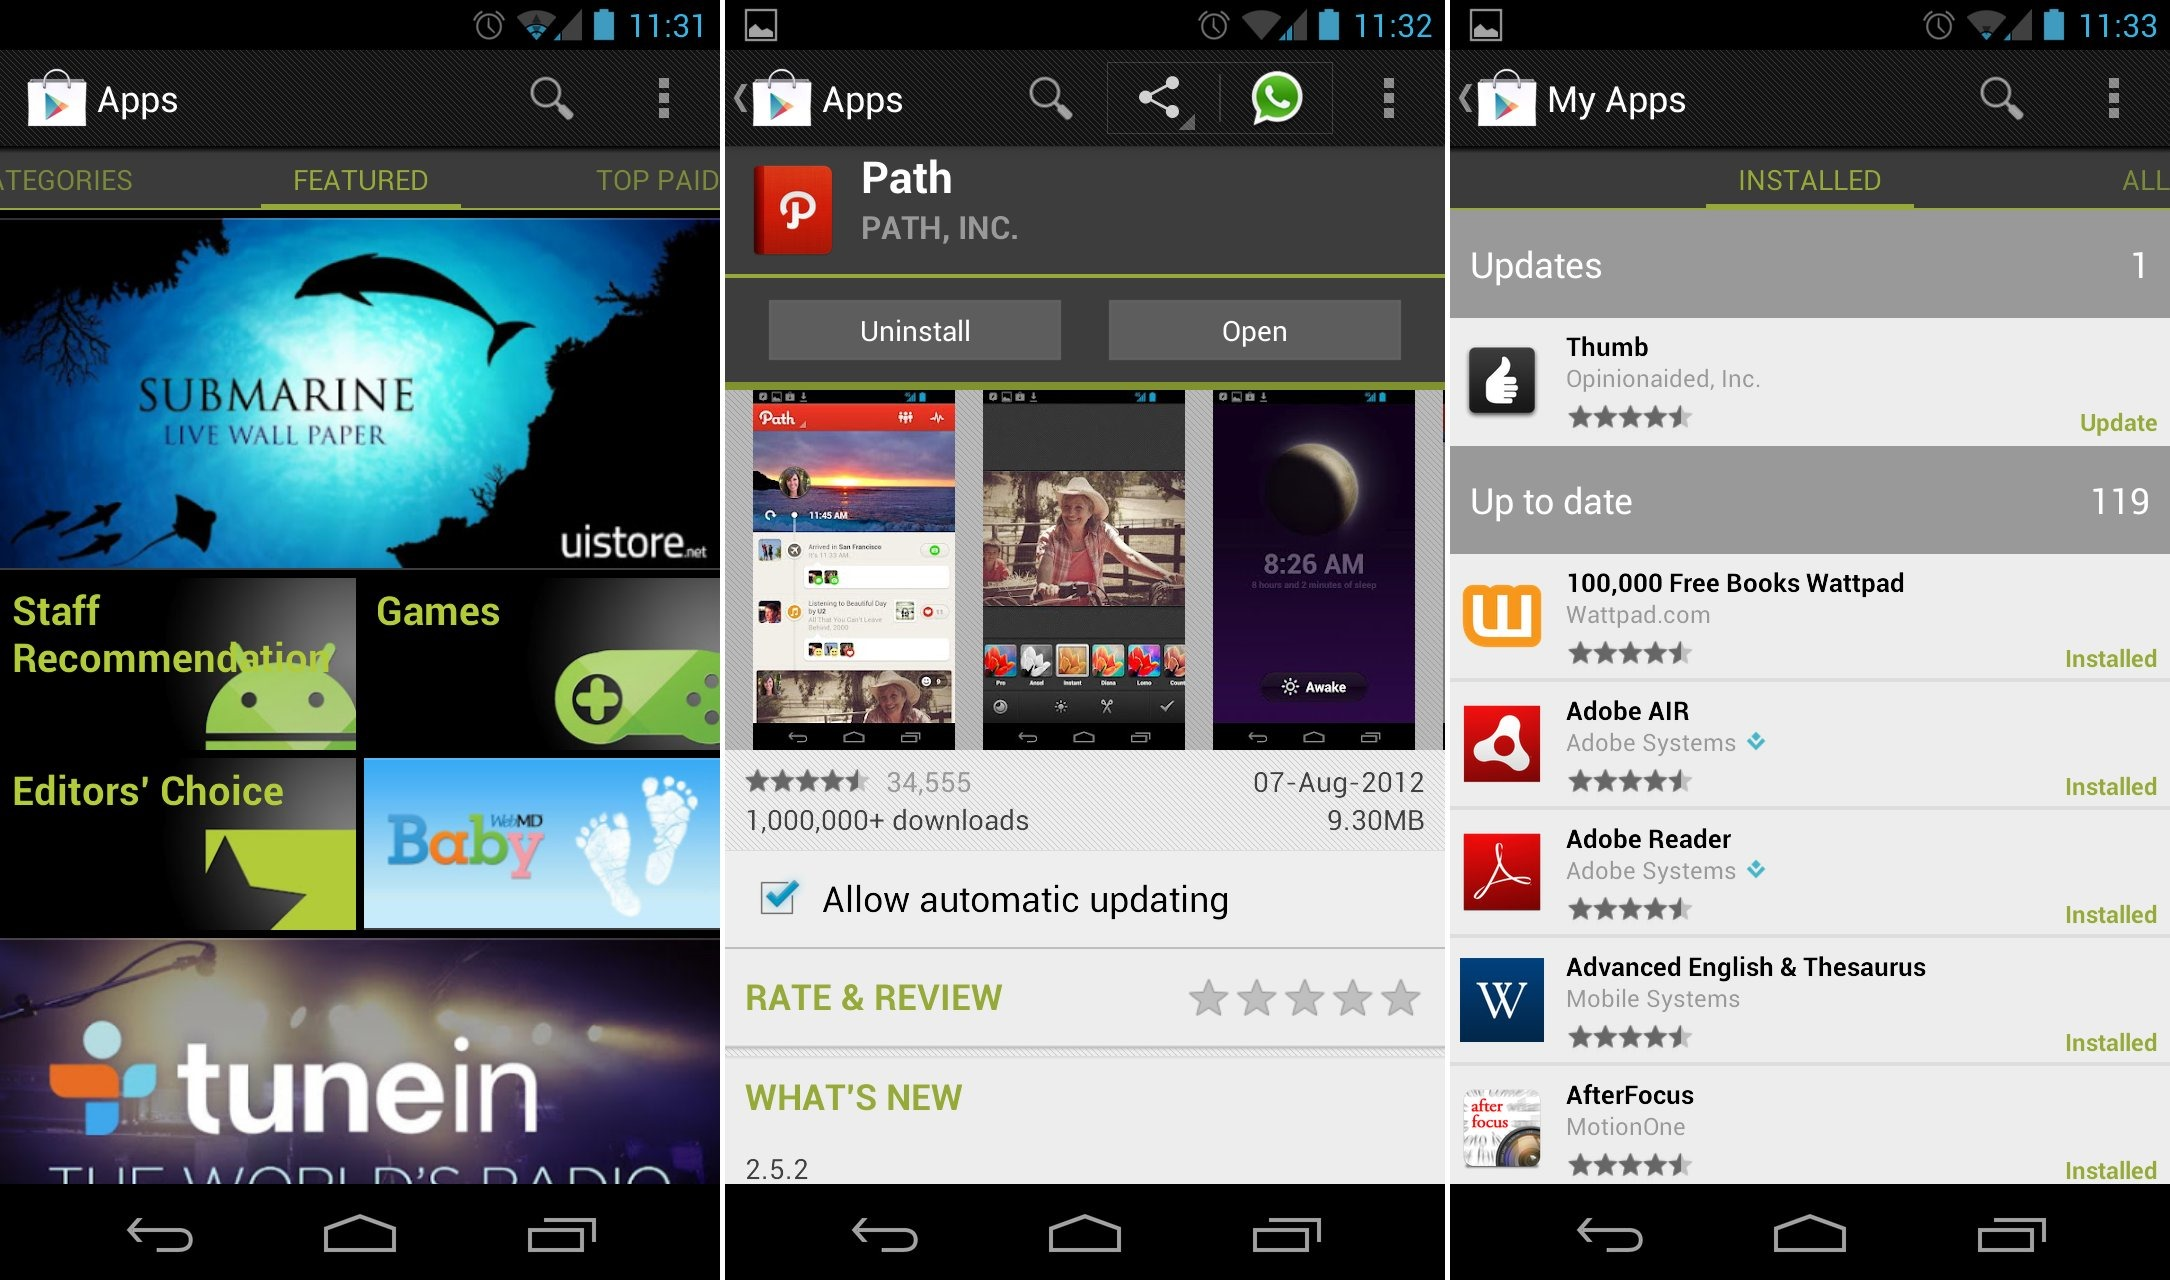 Google Play Store 3.8.15